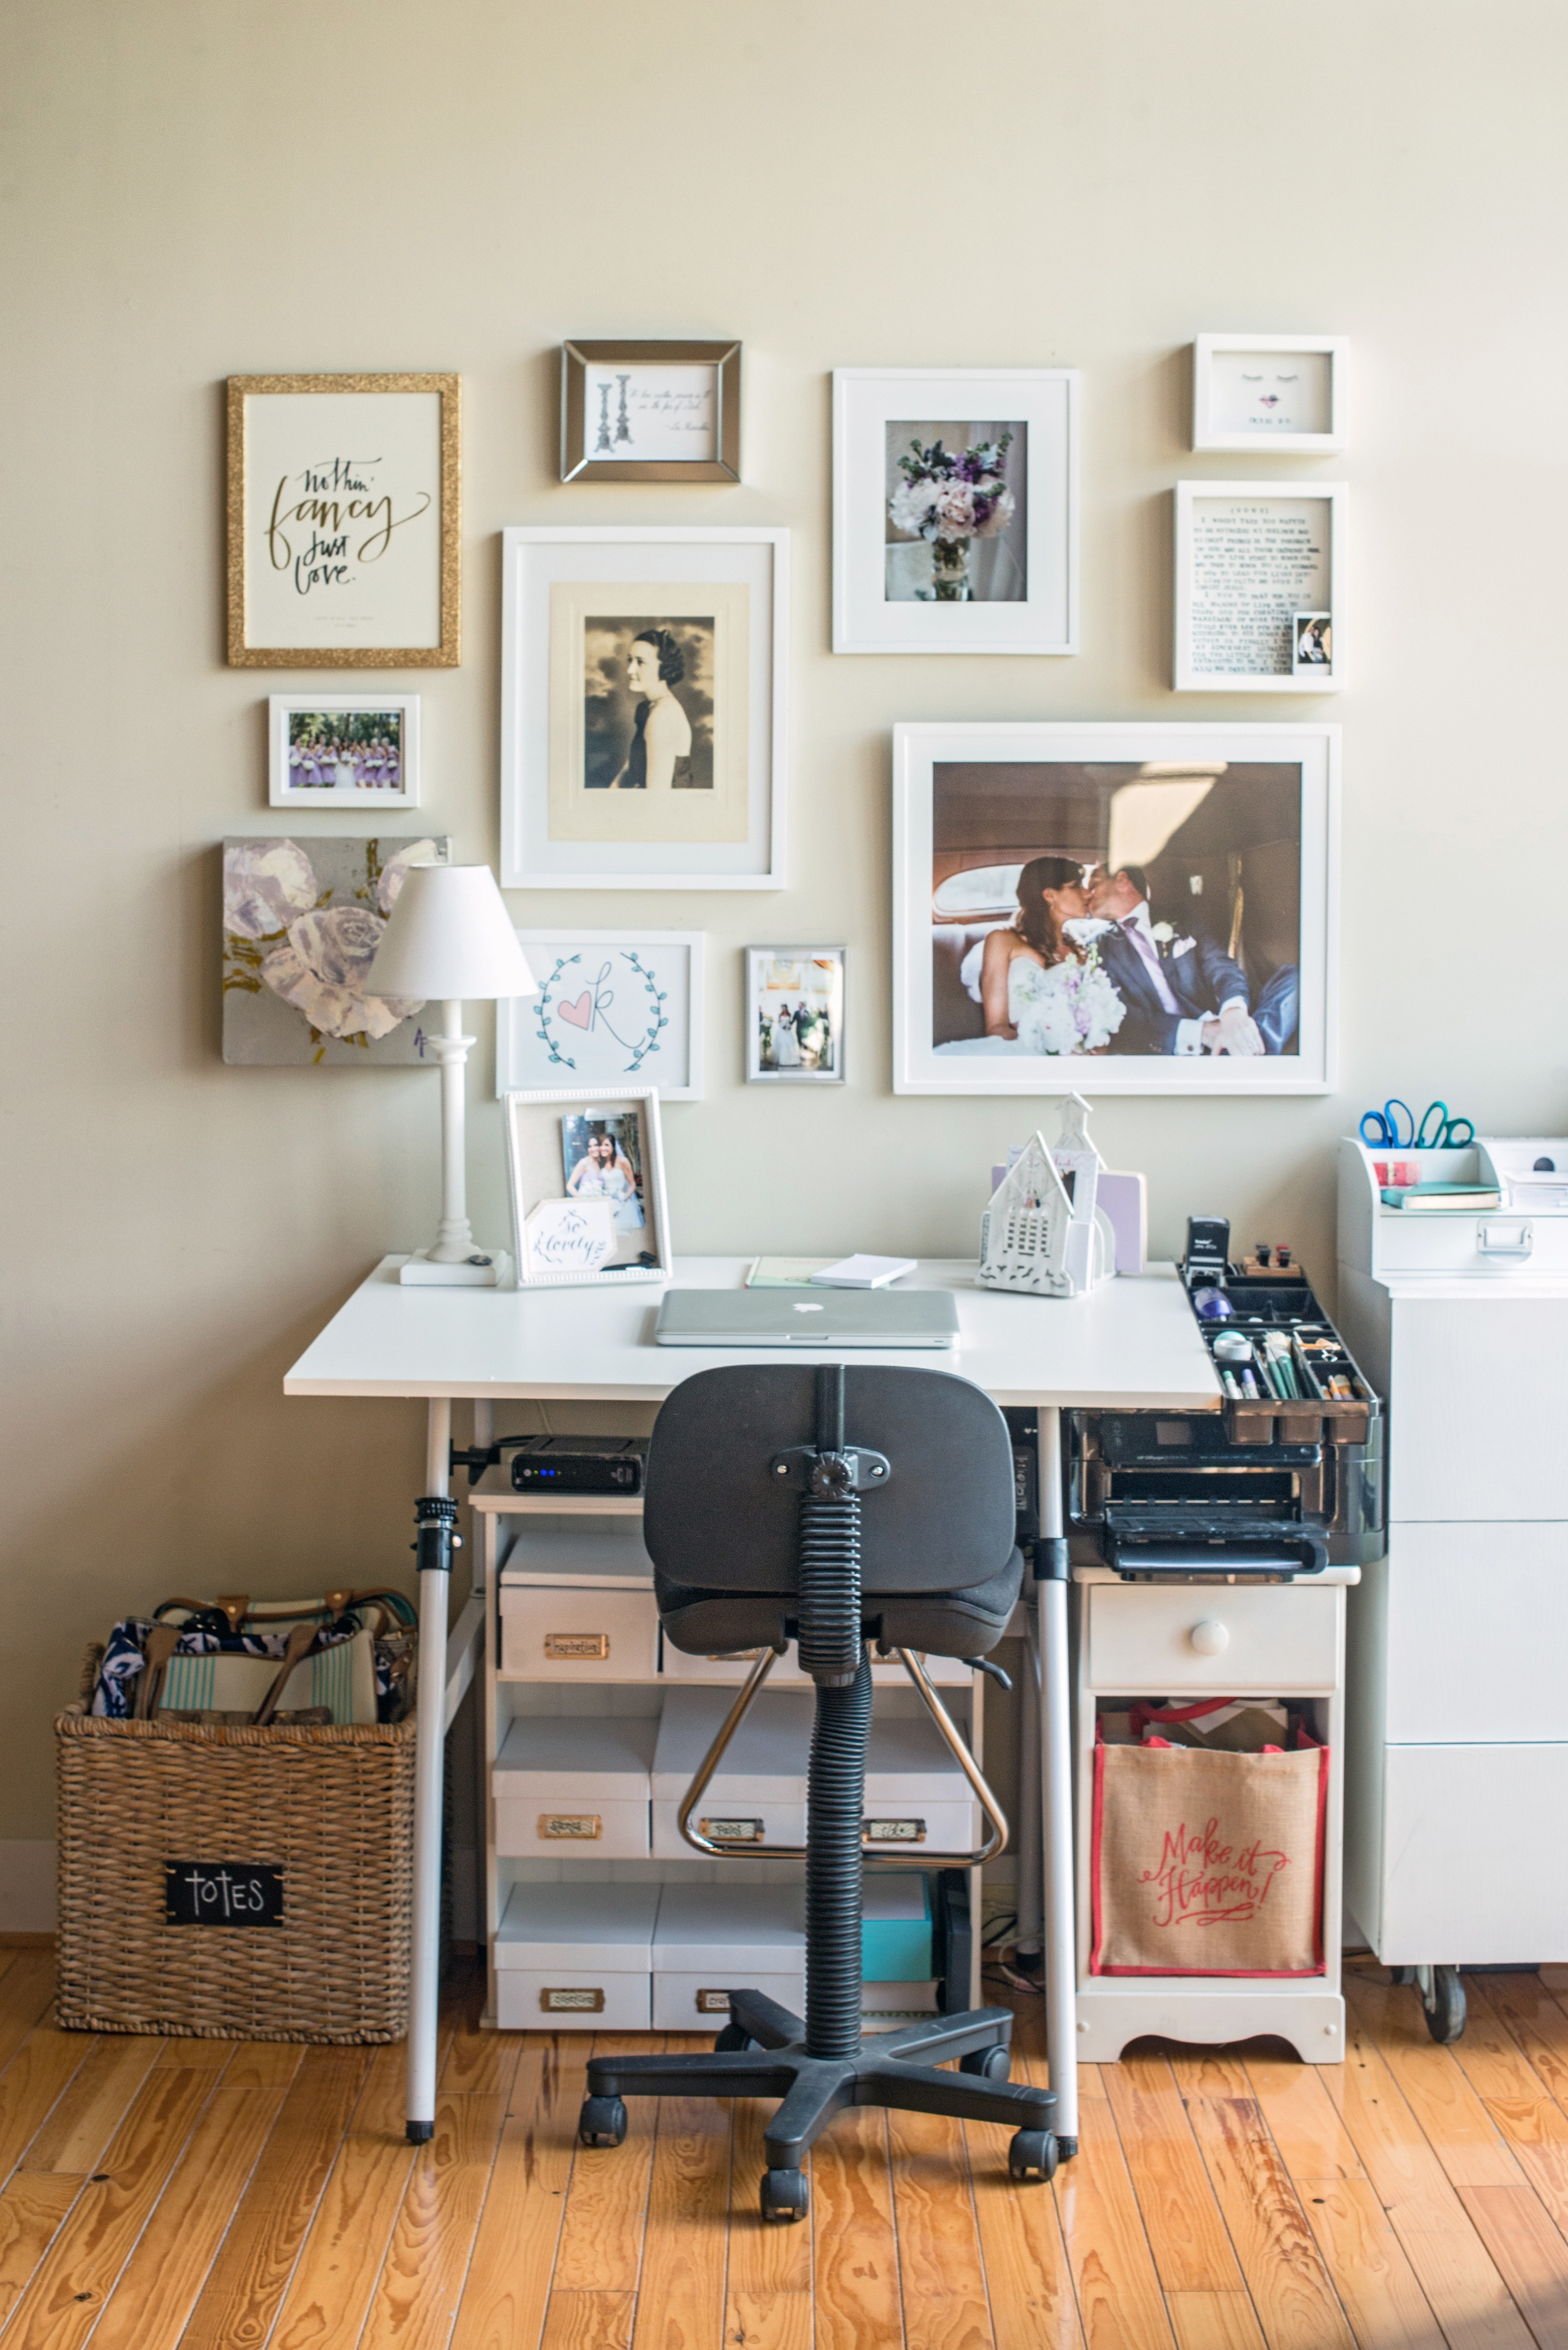 Creating this gallery wall was one of my goals last year, and it is filled with many special items that make my heart so happy, including that gorgeous portrait of my Great, Great Aunt Mattye who I am named after.